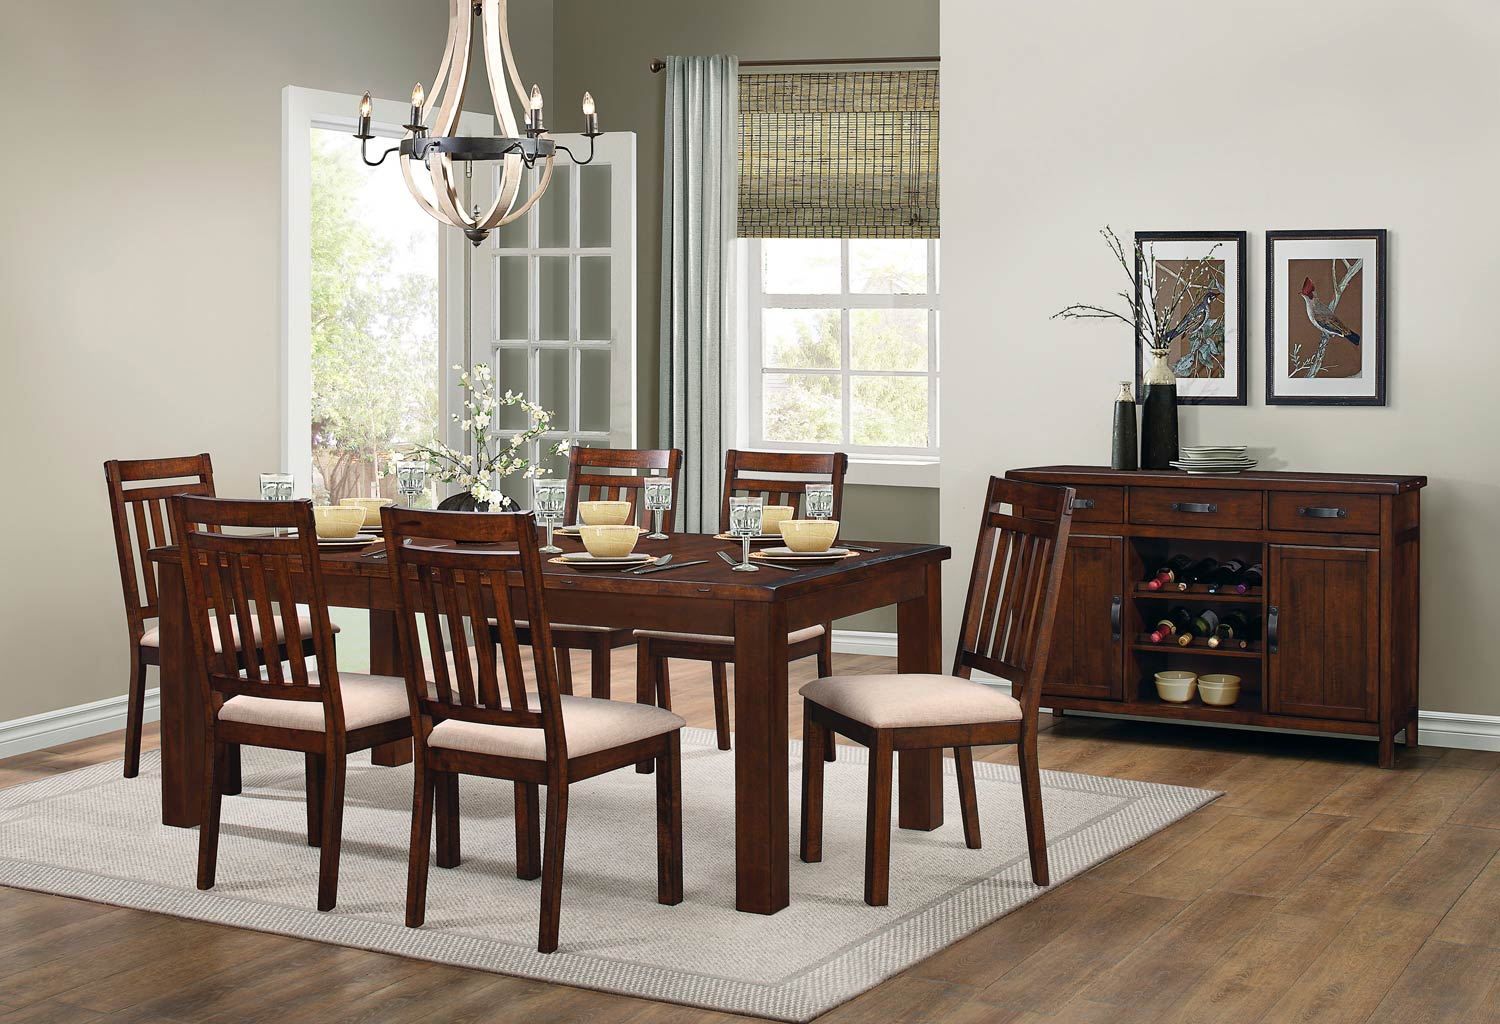 Homelegance Santos Dining Set - Natural Brown